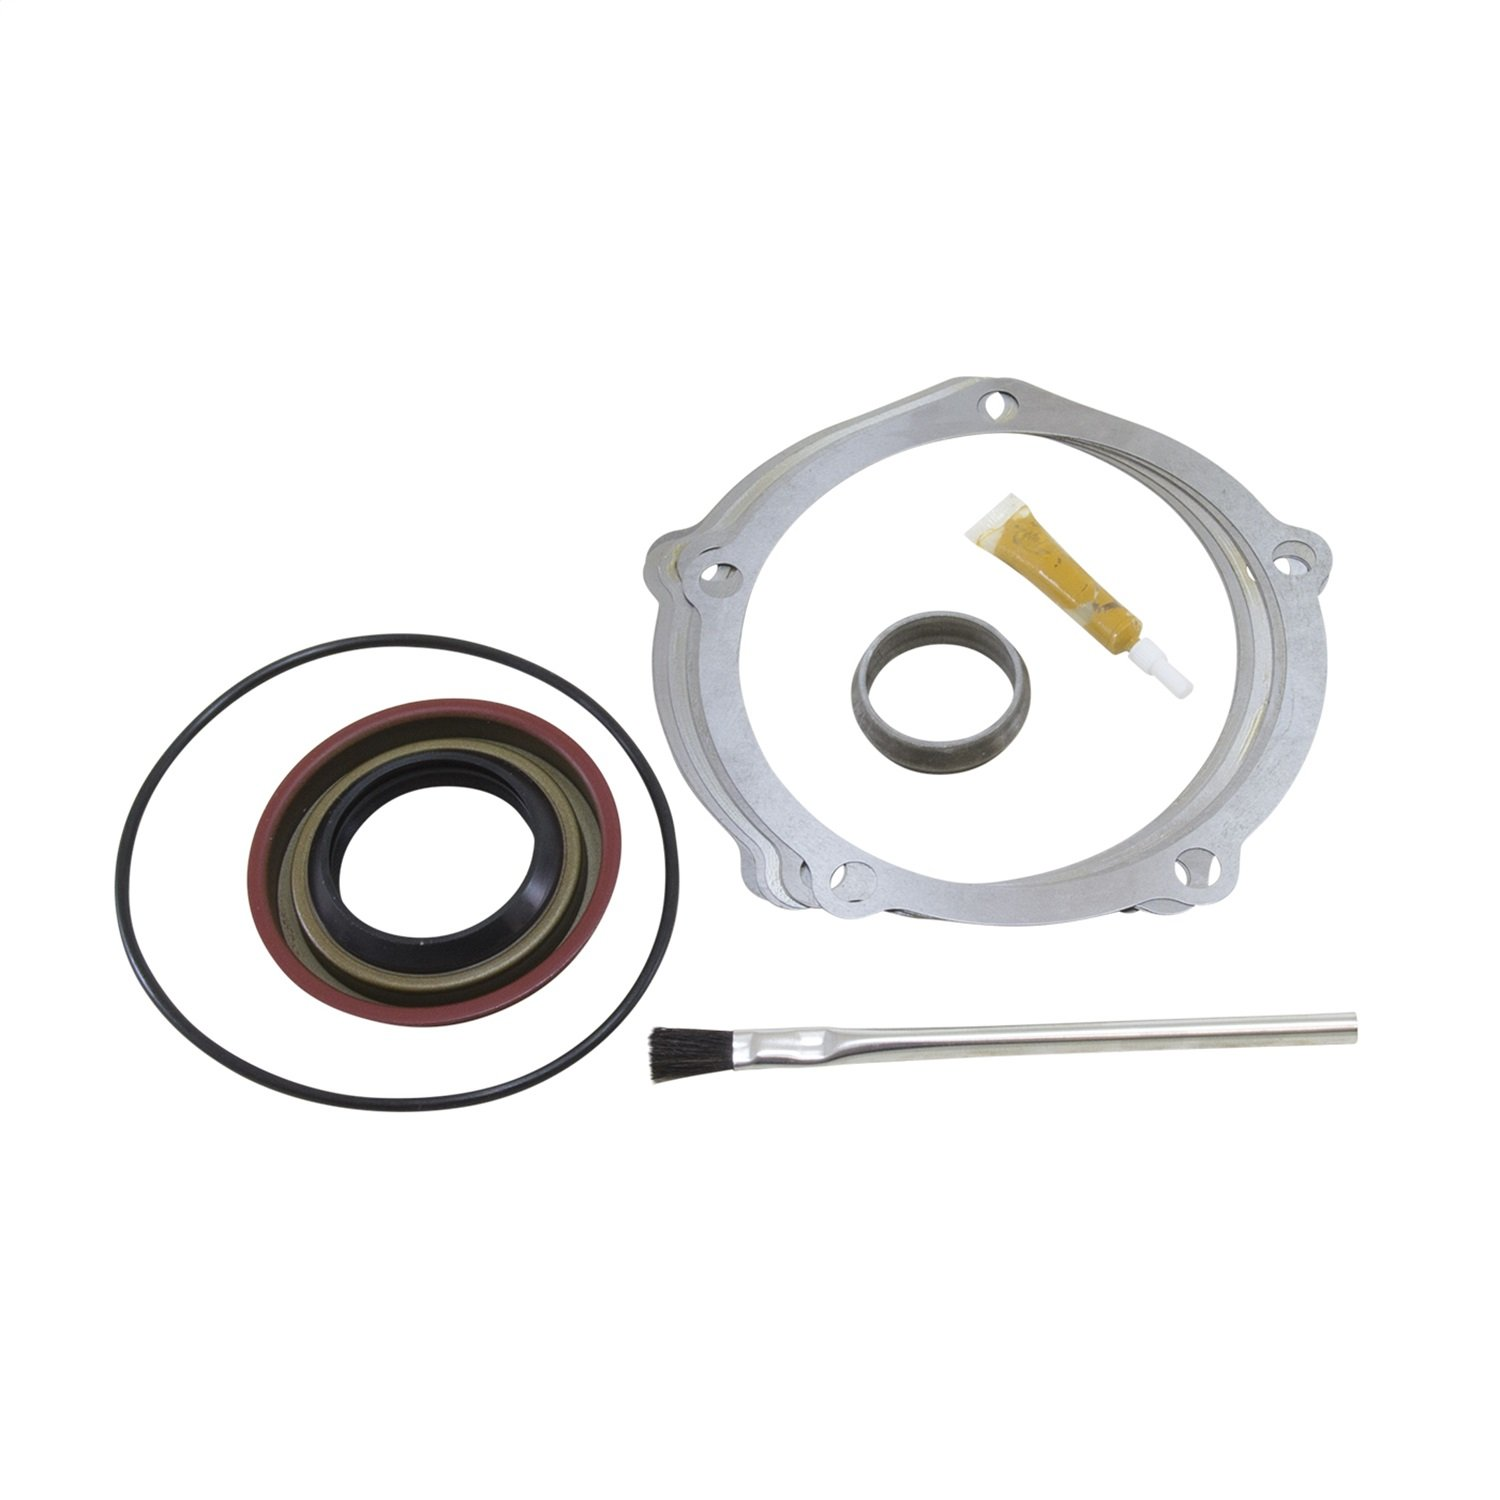 Yukon (MK F9-A) Minor Installation Kit for Ford 9'' Differential